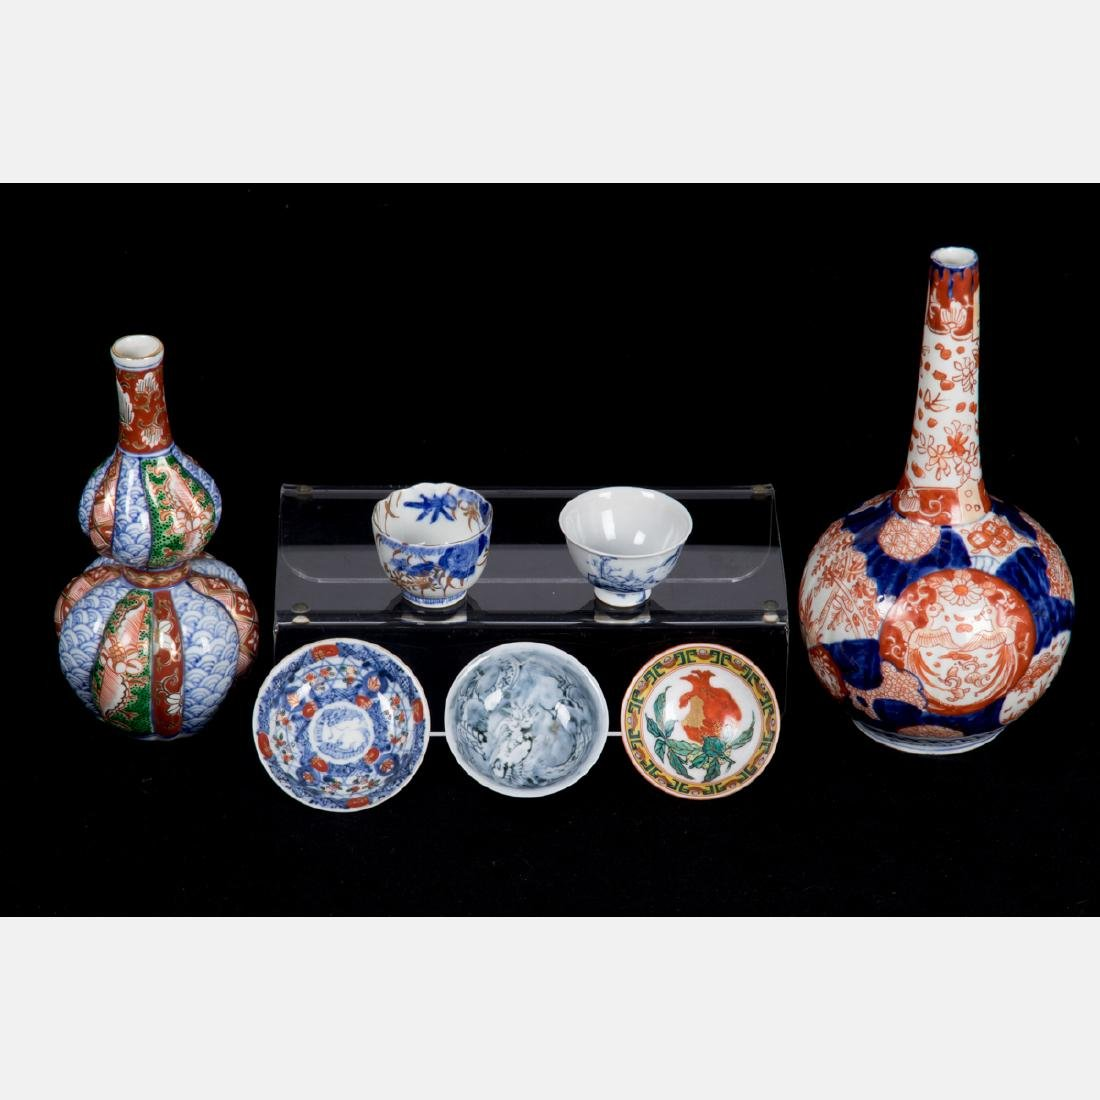 A Group of Seven Japanese Imari Porcelain Serving and